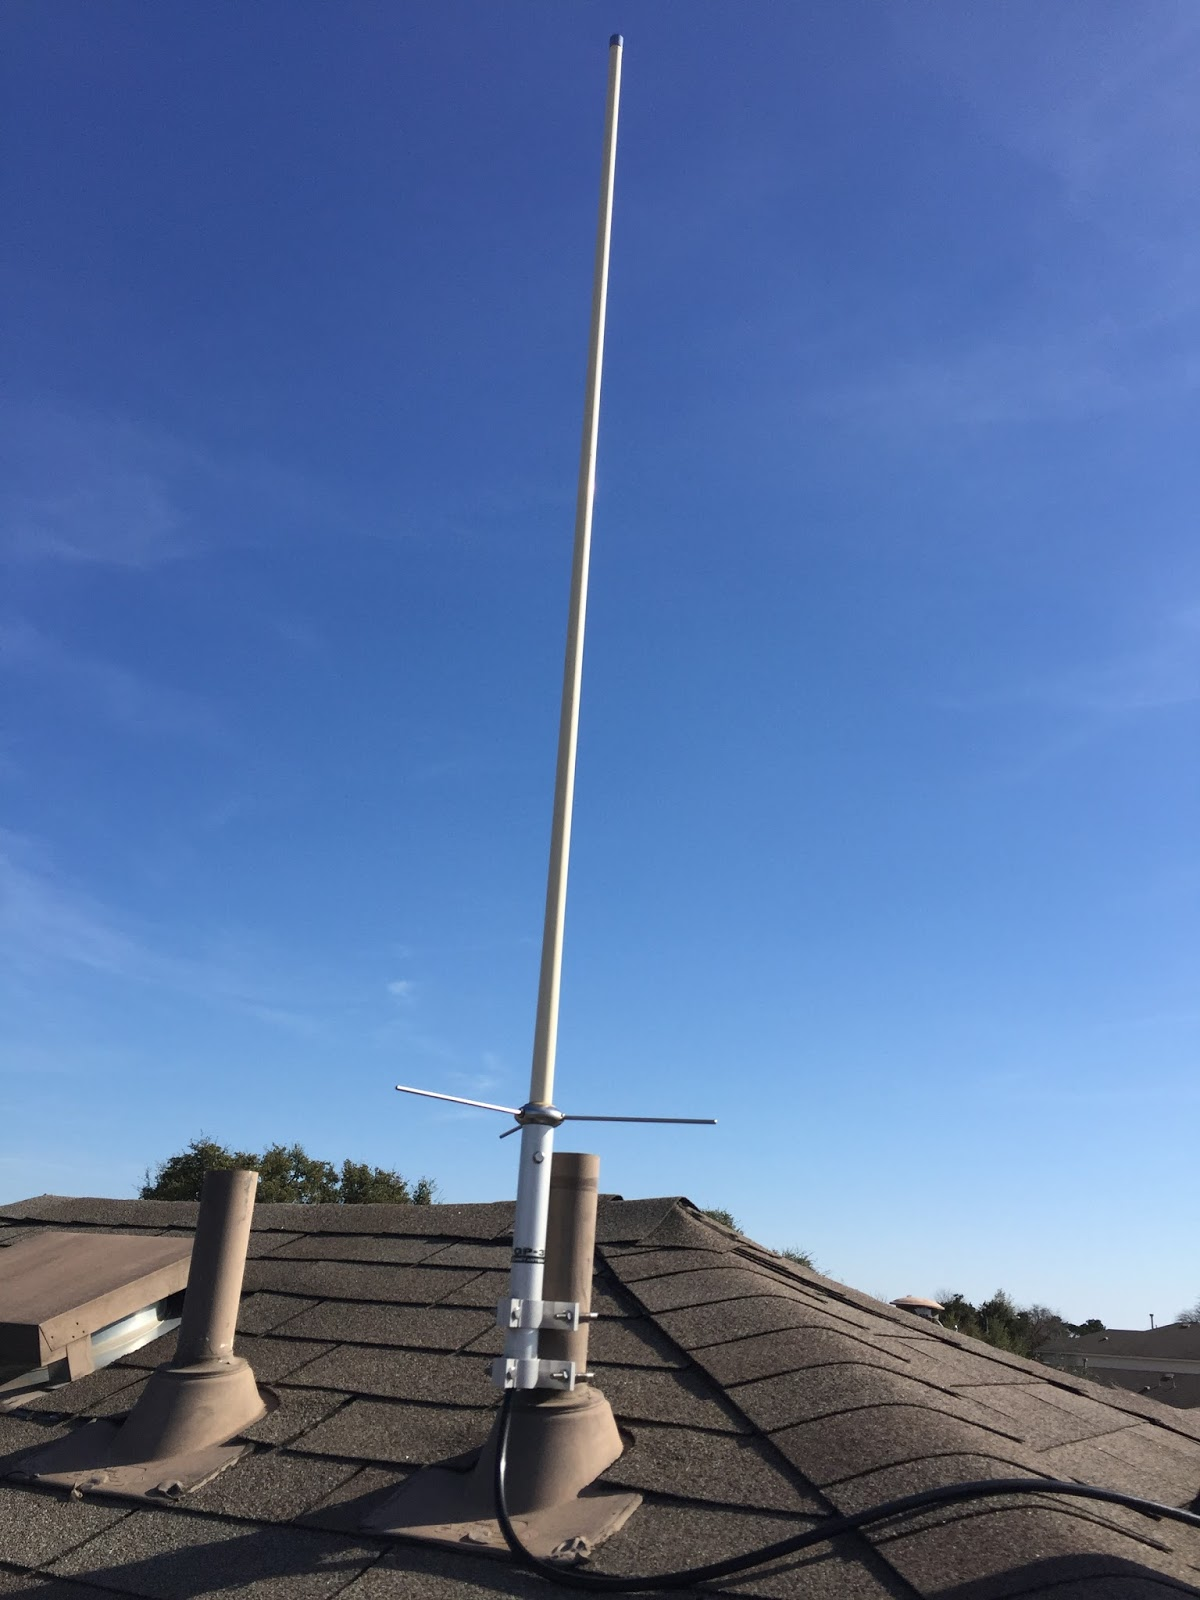 Upgrading from a j pole - looking for advice